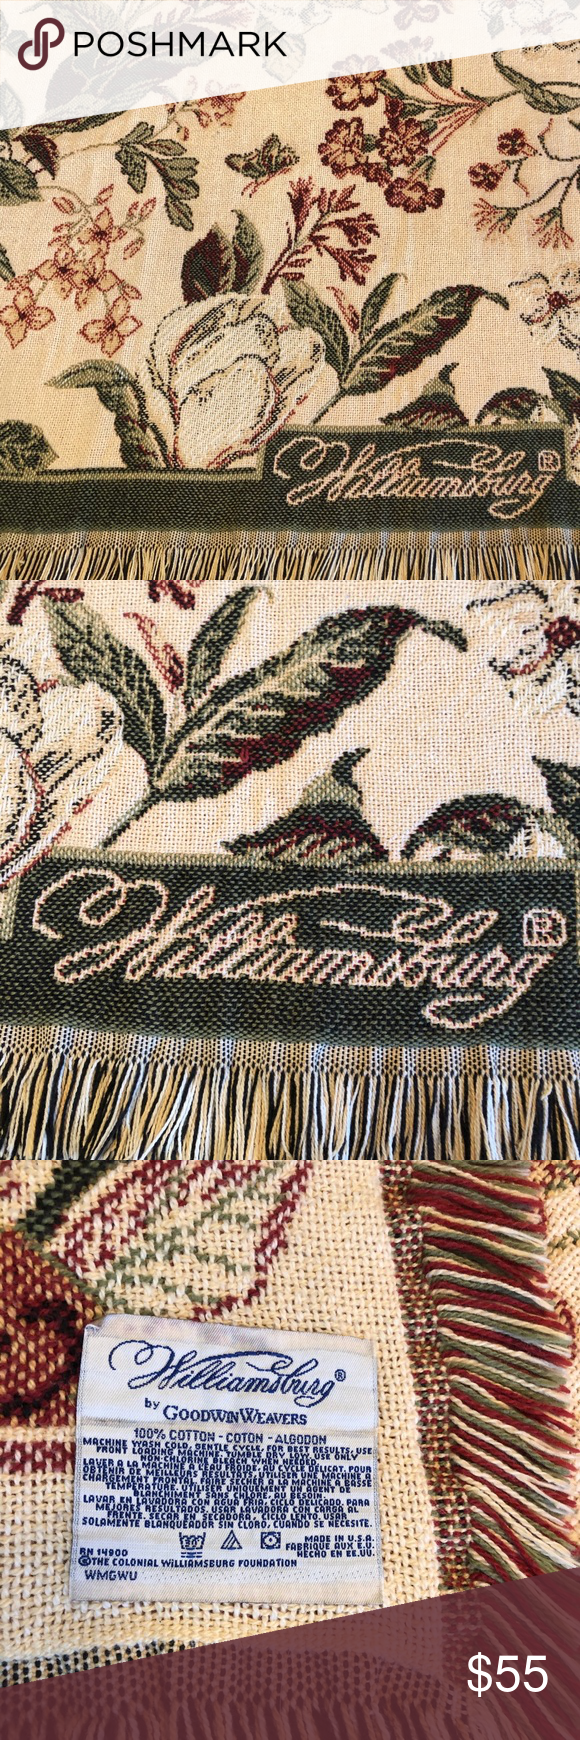 Williamsburg Woven Cotton Blanket Goodwin Weavers This Lovely